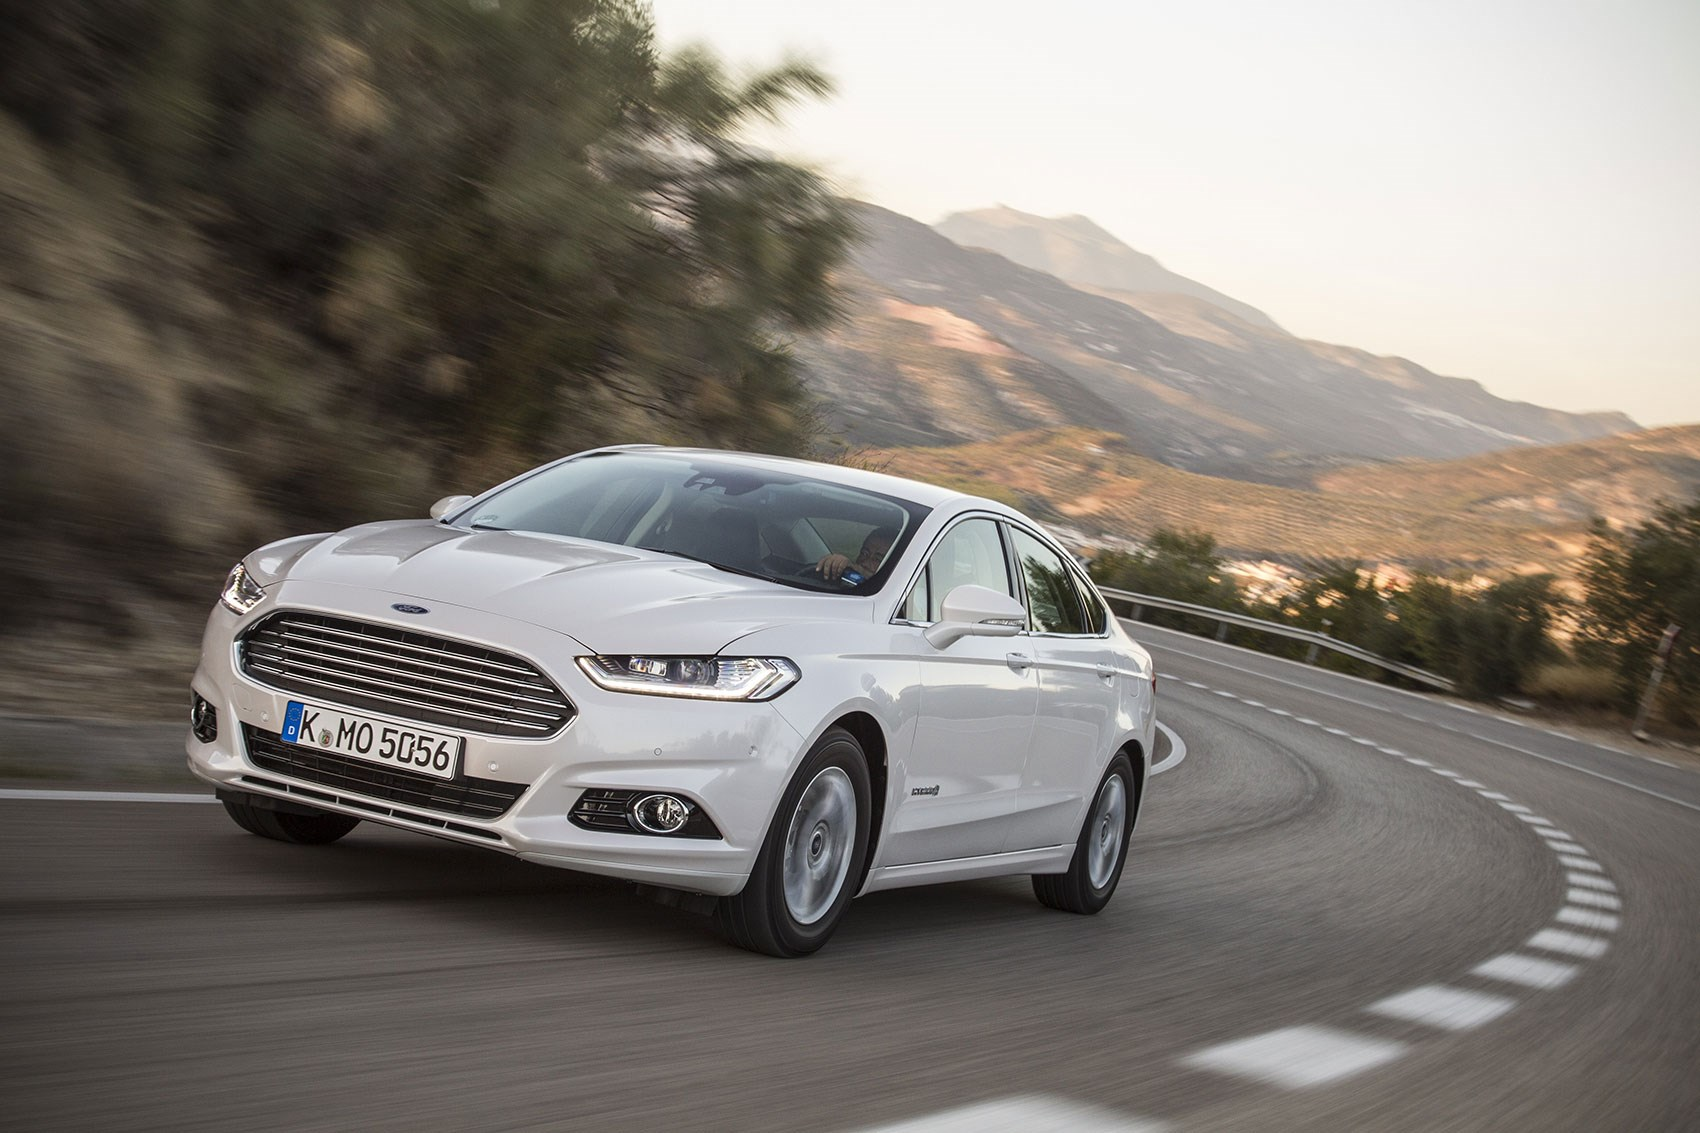 Ford Mondeo Titanium 2.0 TiVCT Hybrid (2017) review | CAR ...